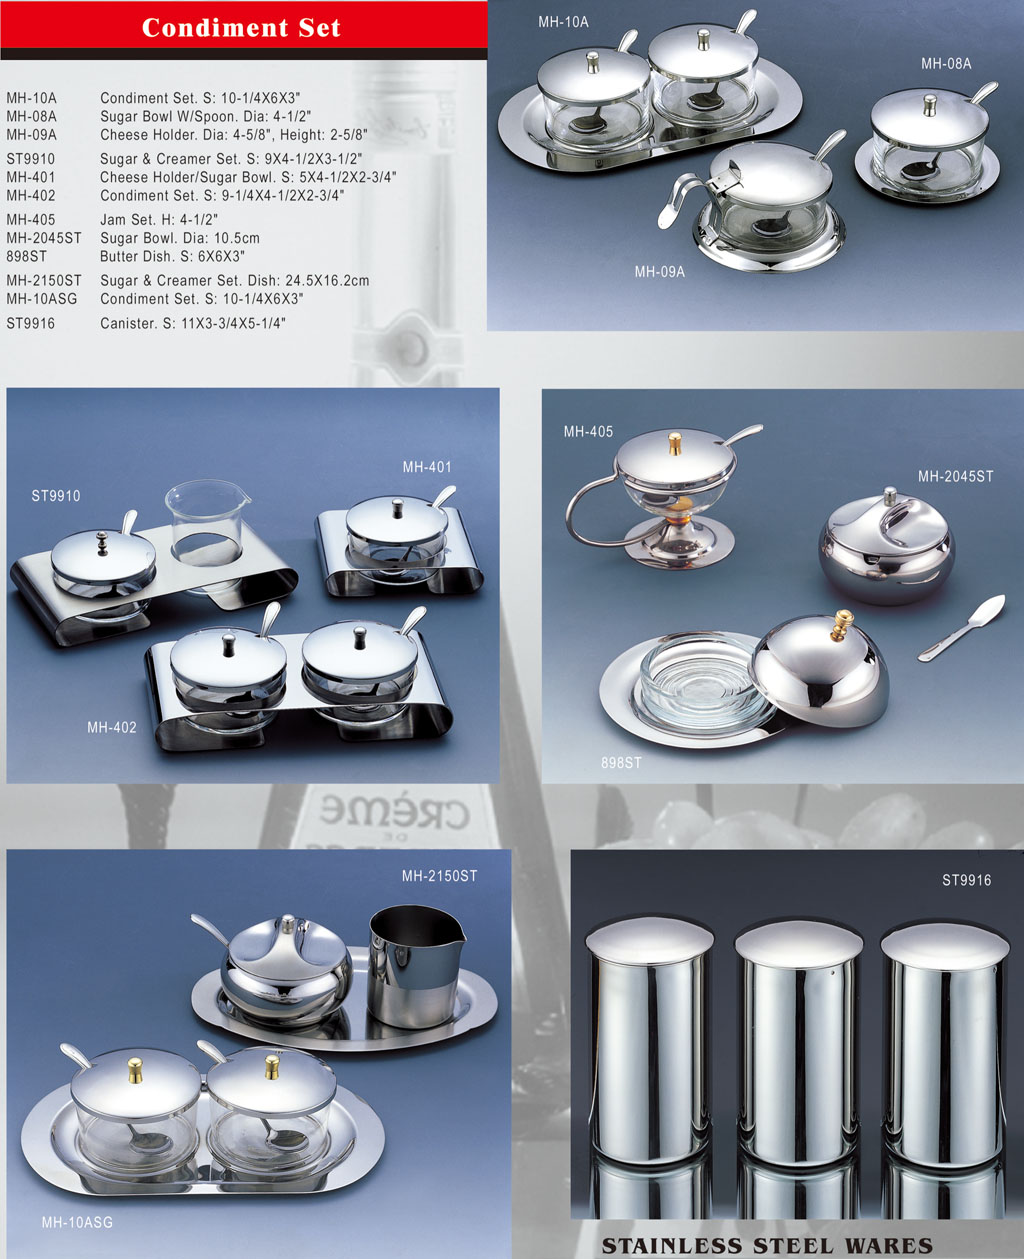 Stainless Steel Ware - Condiment Set